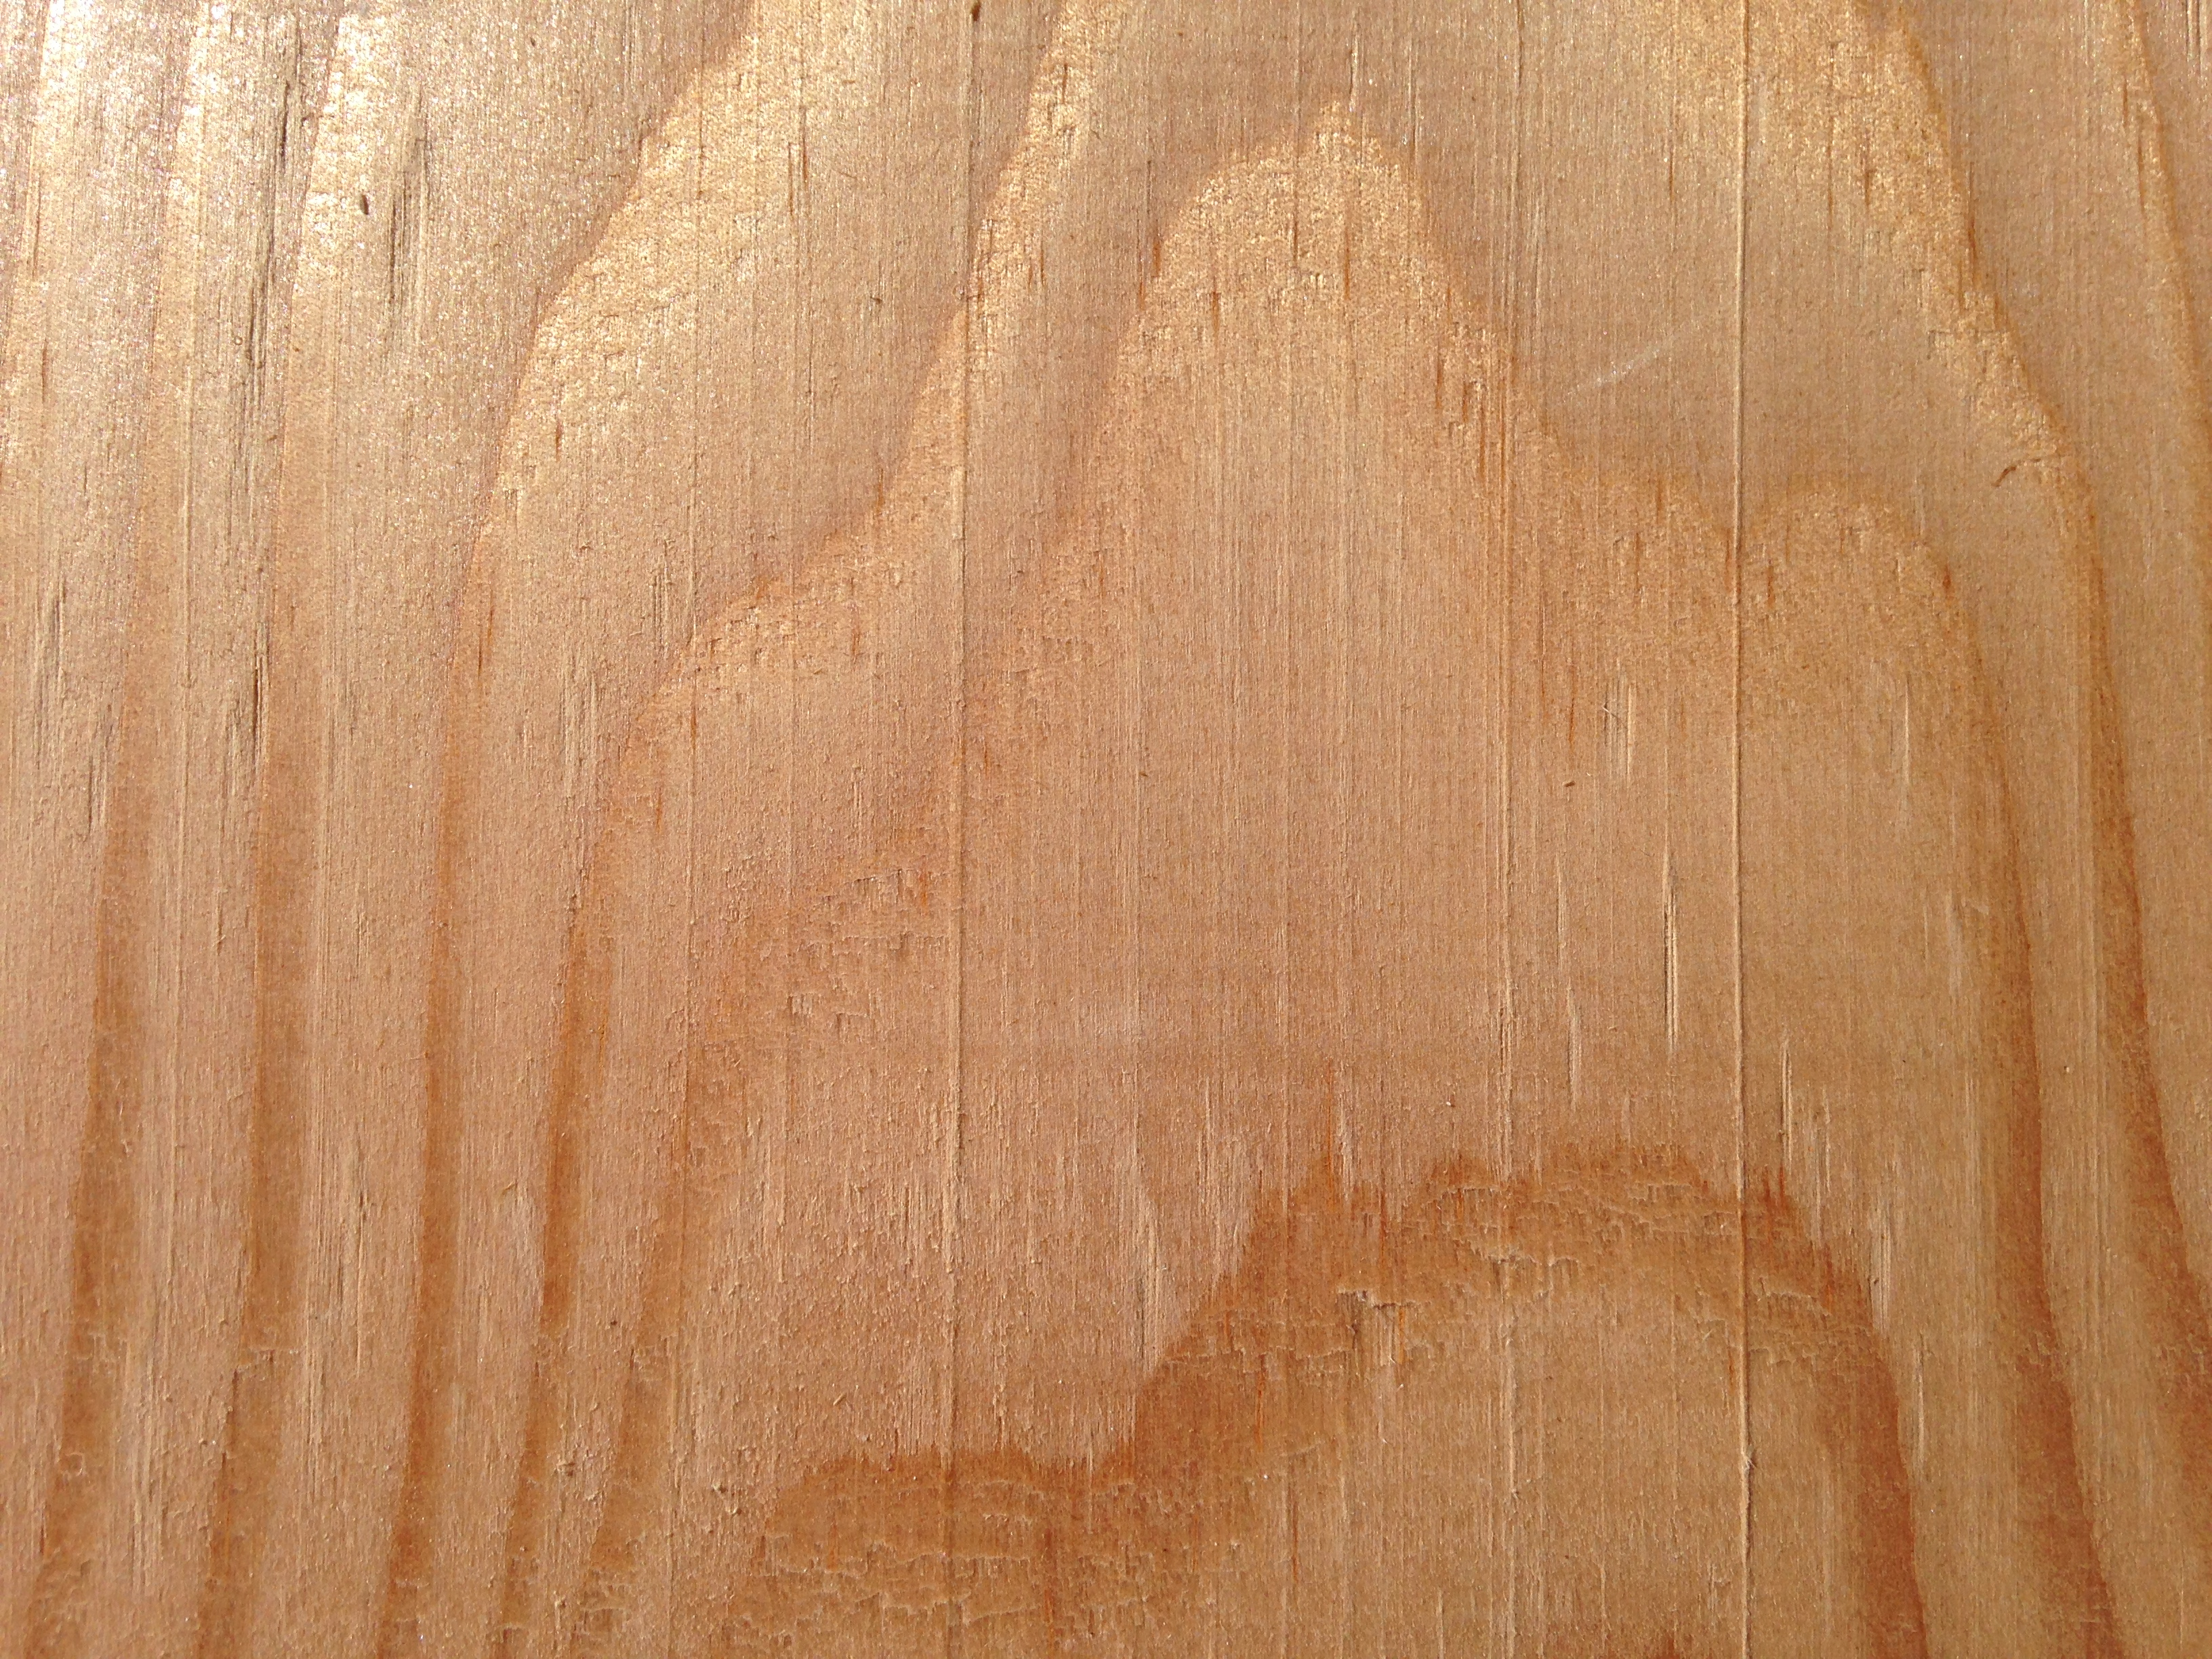 American Douglas Fir Timber Merchants Uk Timbersource